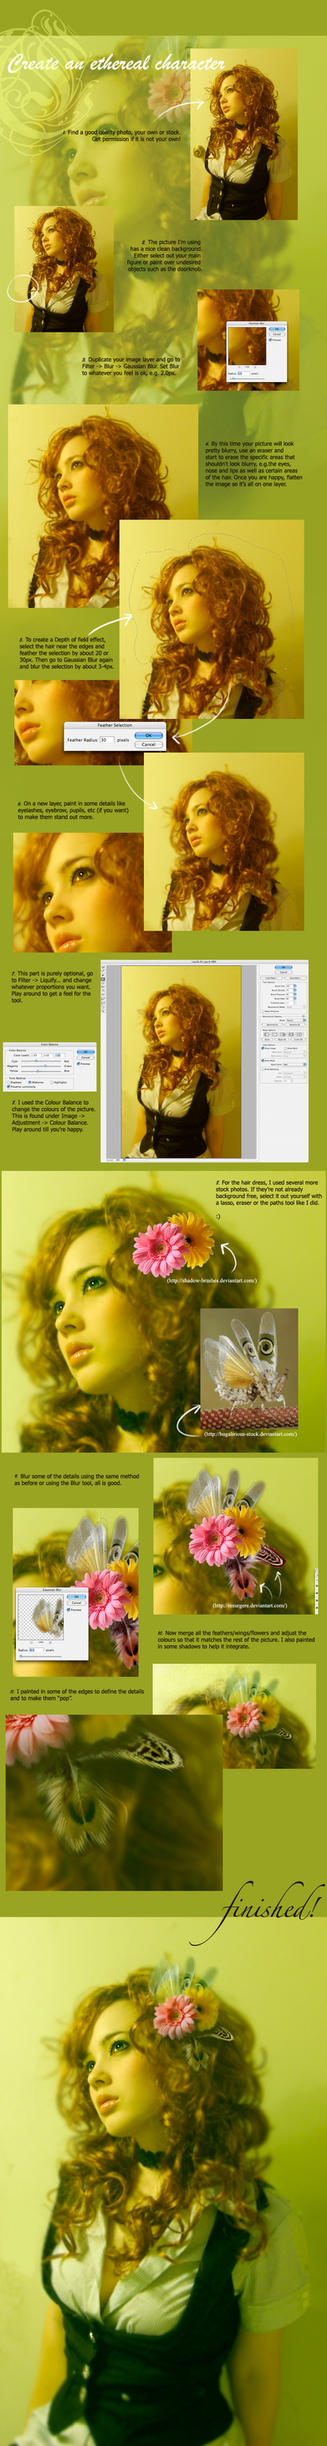 Photomanipulation Tutorial by acidlullaby